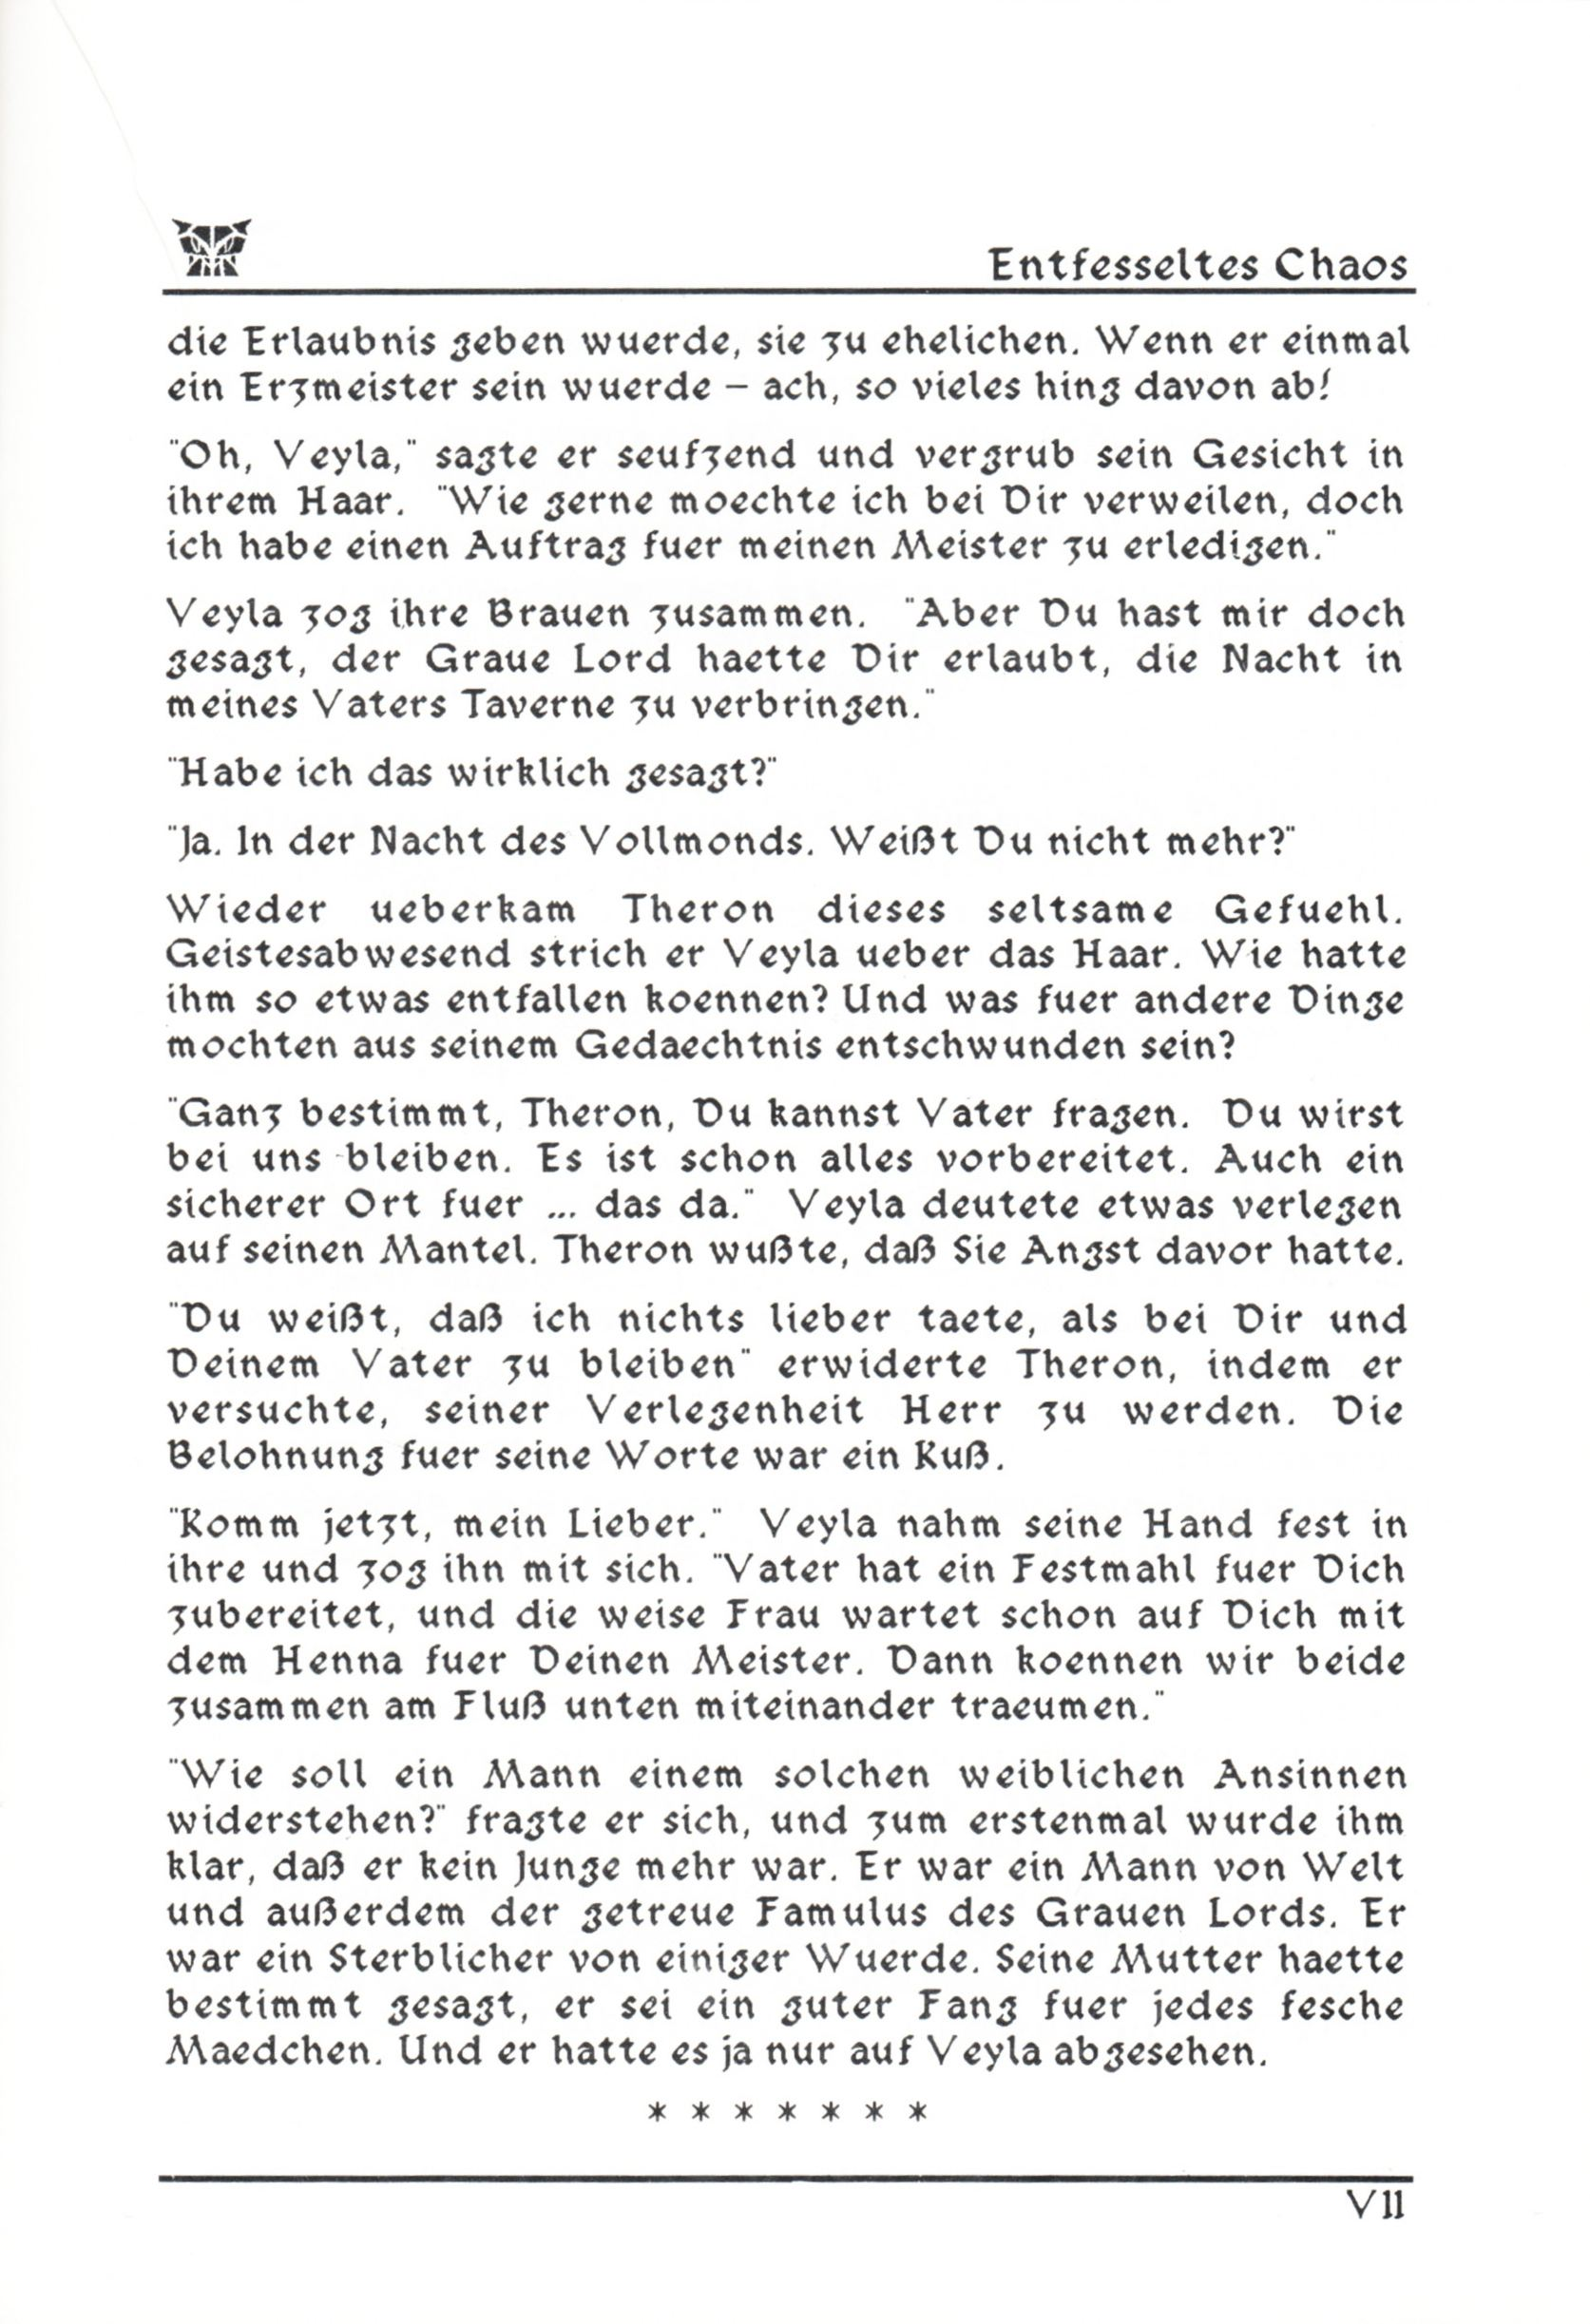 Game - Dungeon Master - DE - PC - Psygnosis - Manual - Page 011 - Scan